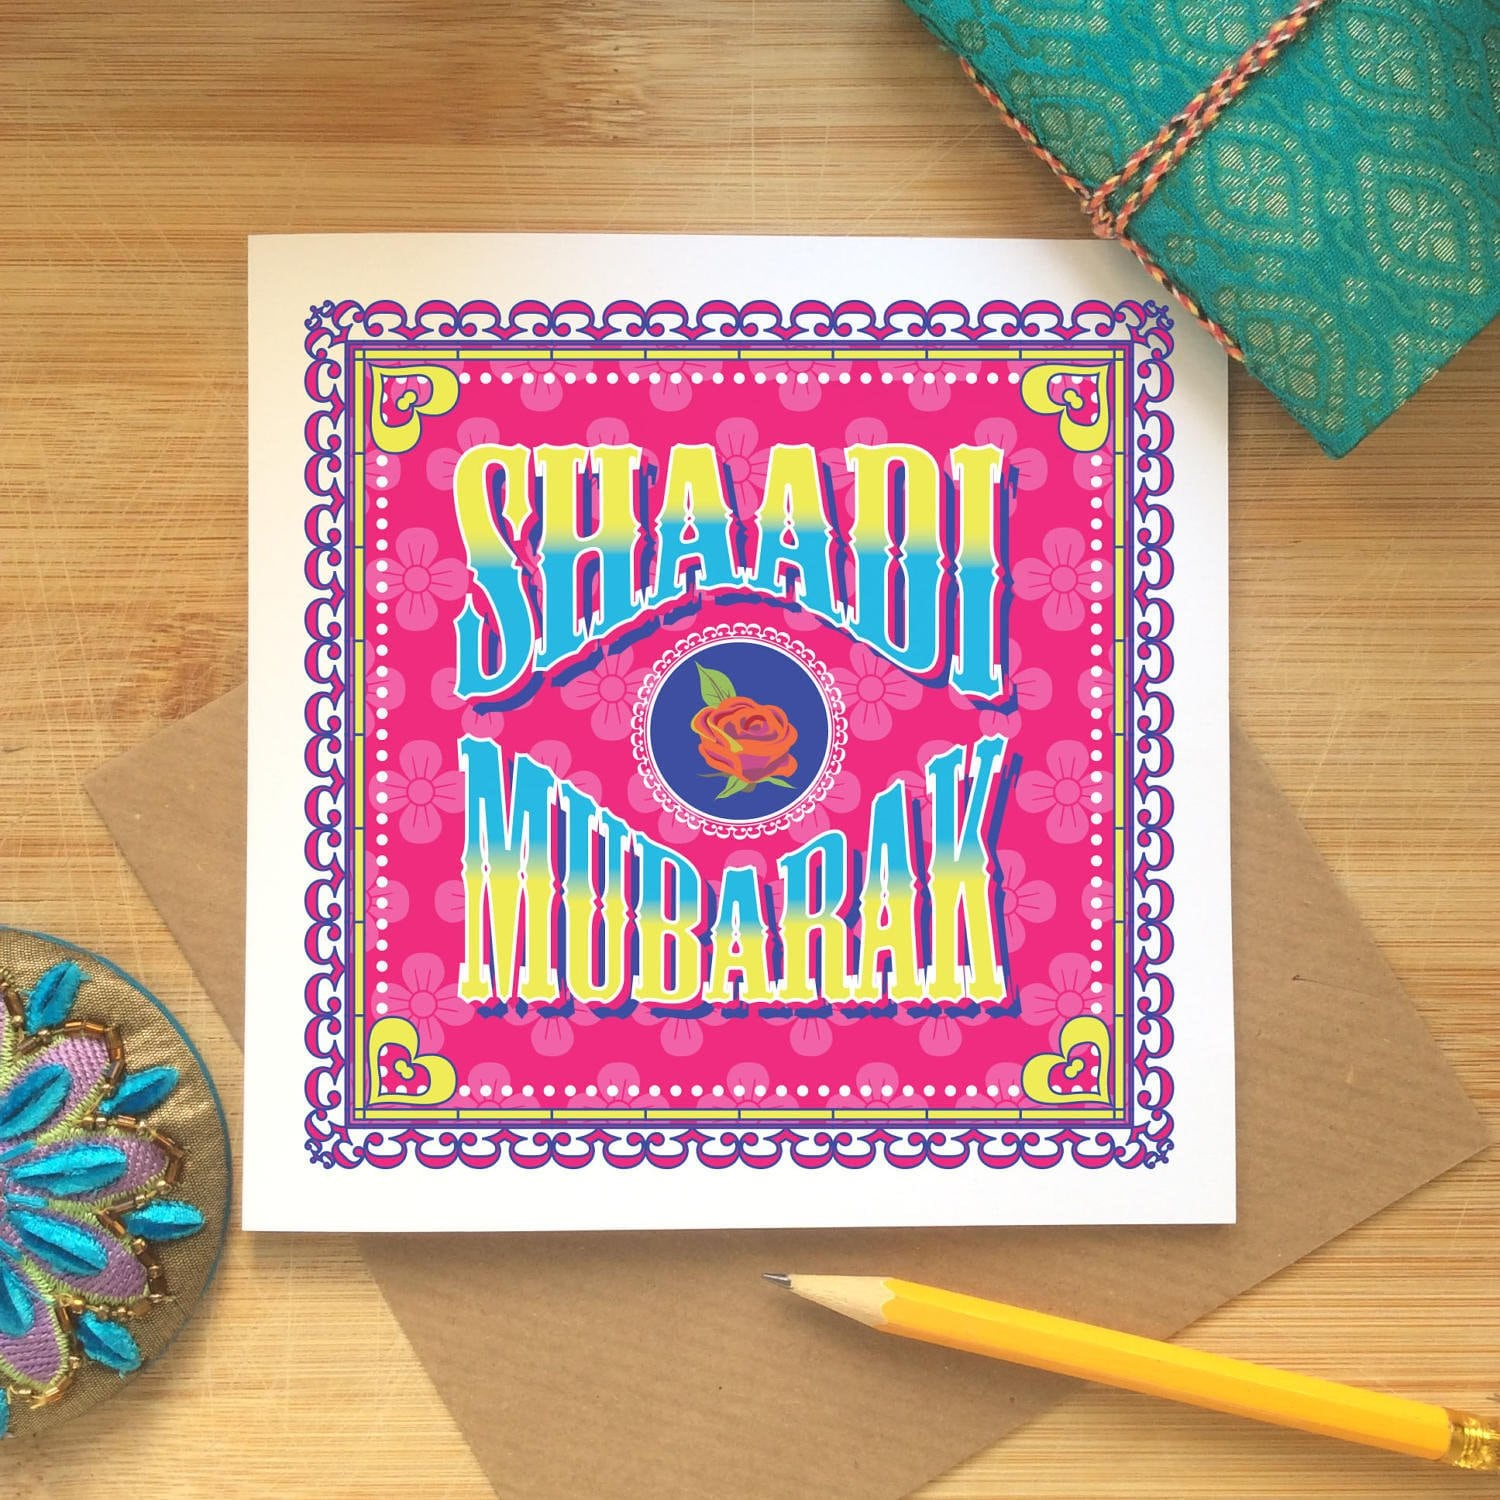 Indian Wedding Congratulations Card Shaadi Mubarak Bride | Etsy